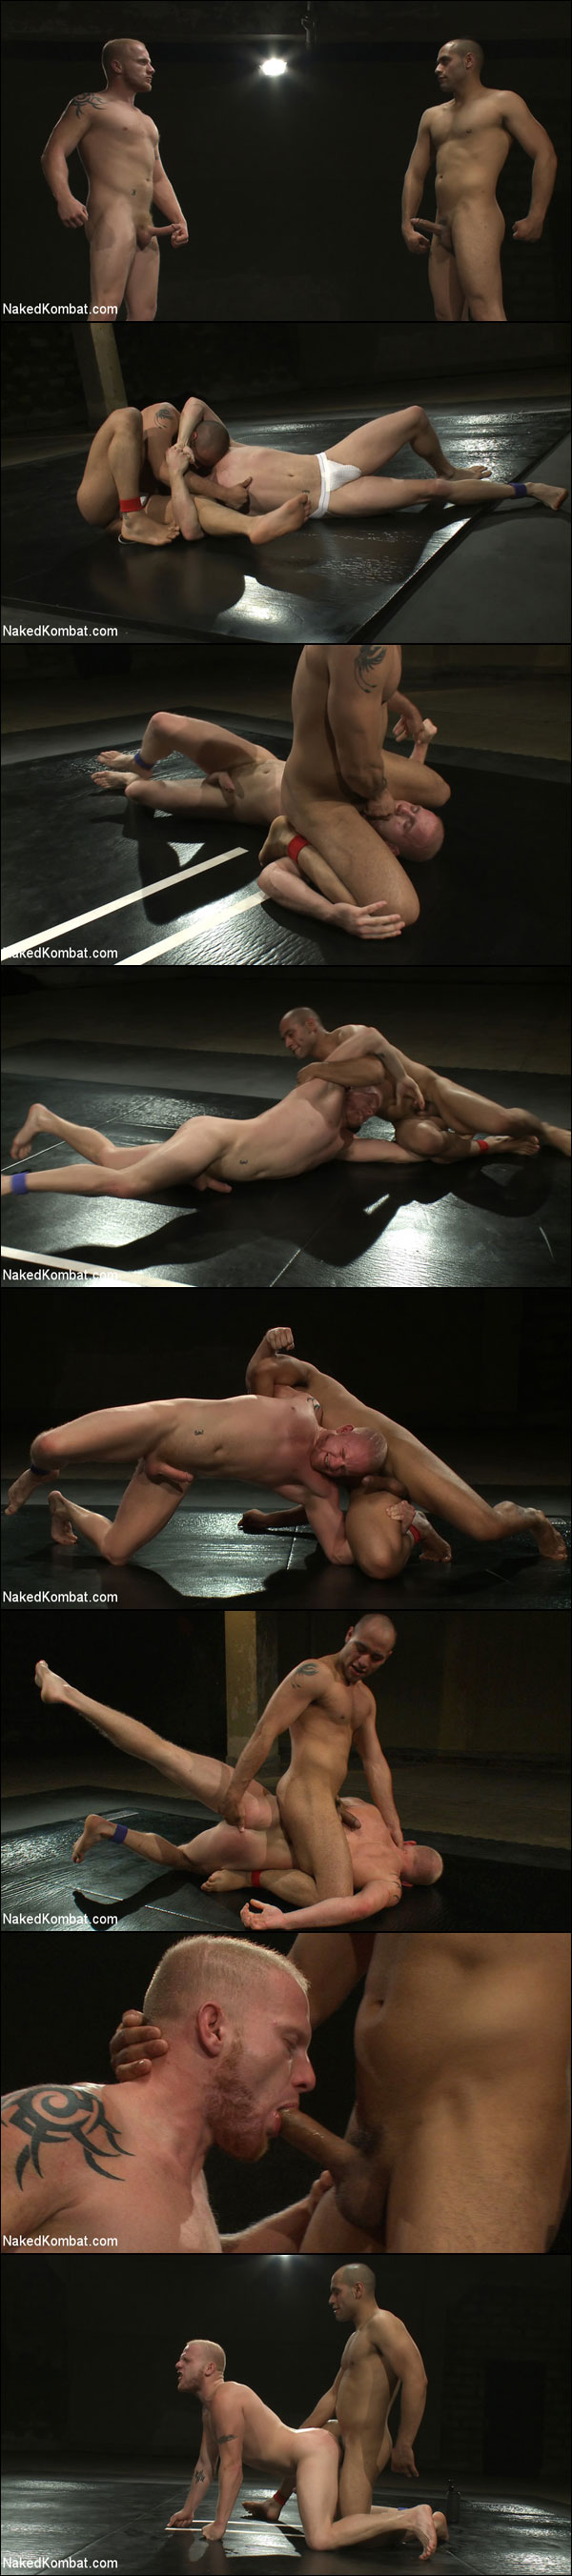 Naked Kombat - Leo Forte vs Luke Riley